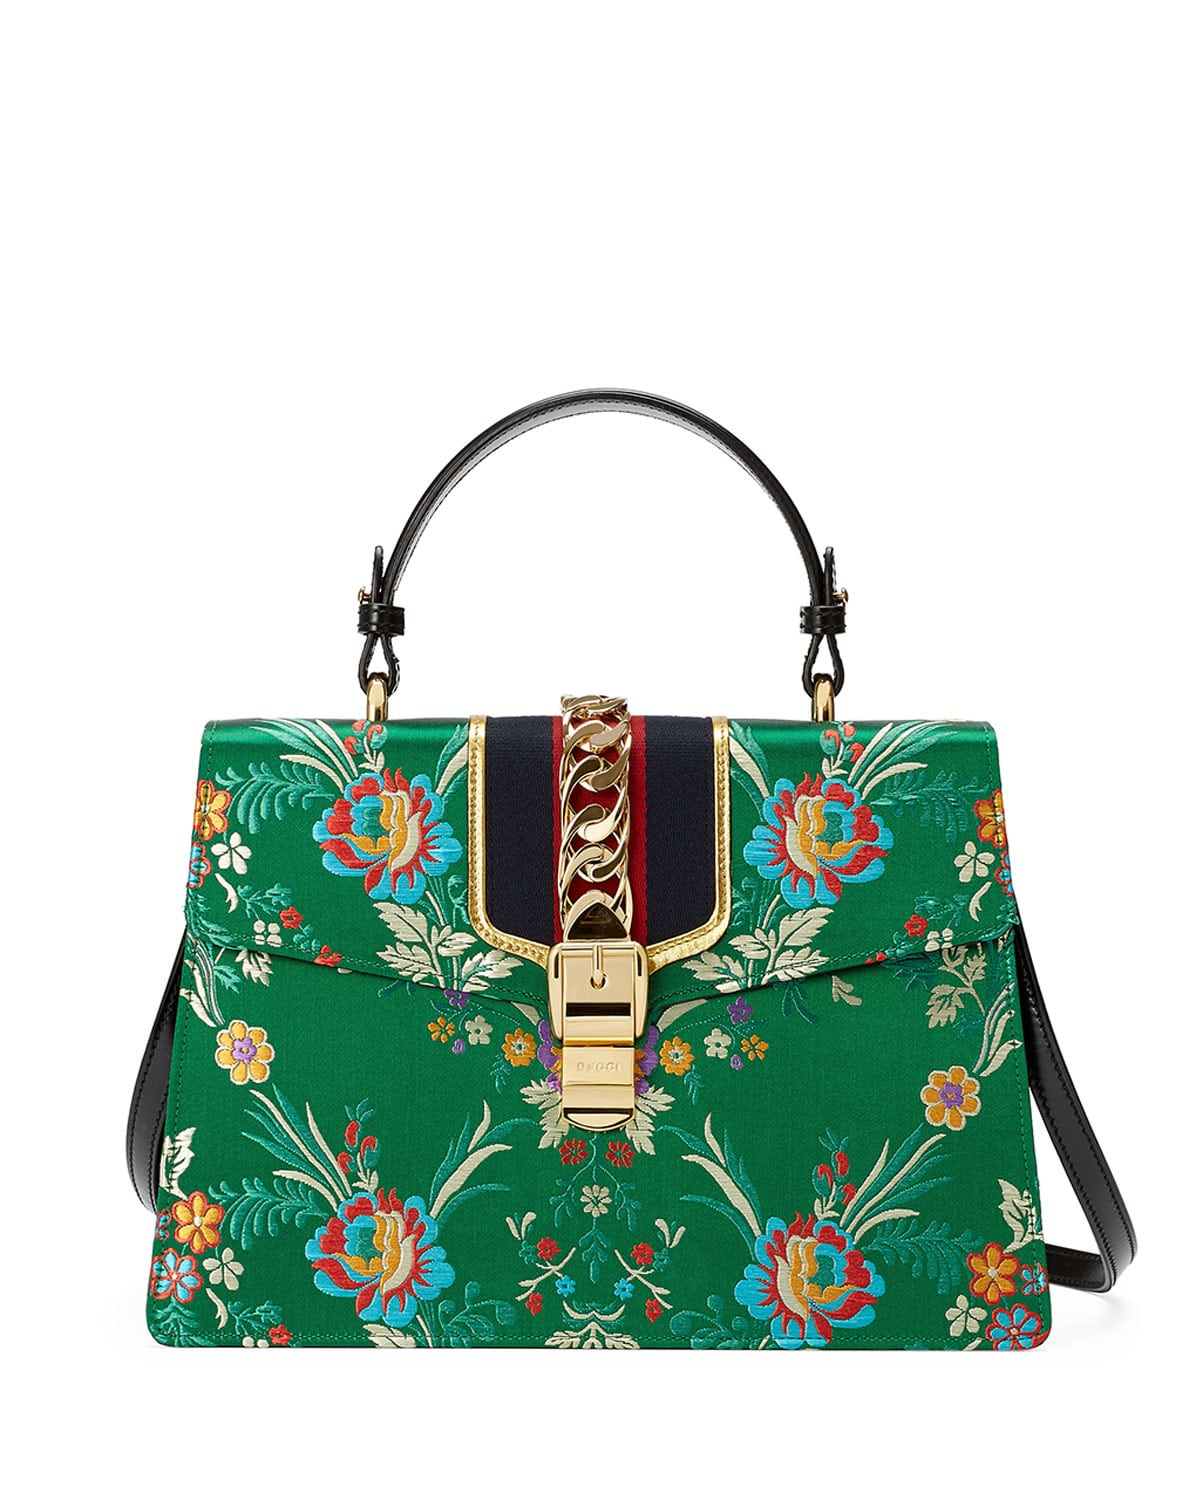 5fd3e48c7ff Gucci Spring Summer 2017 Bag Collection